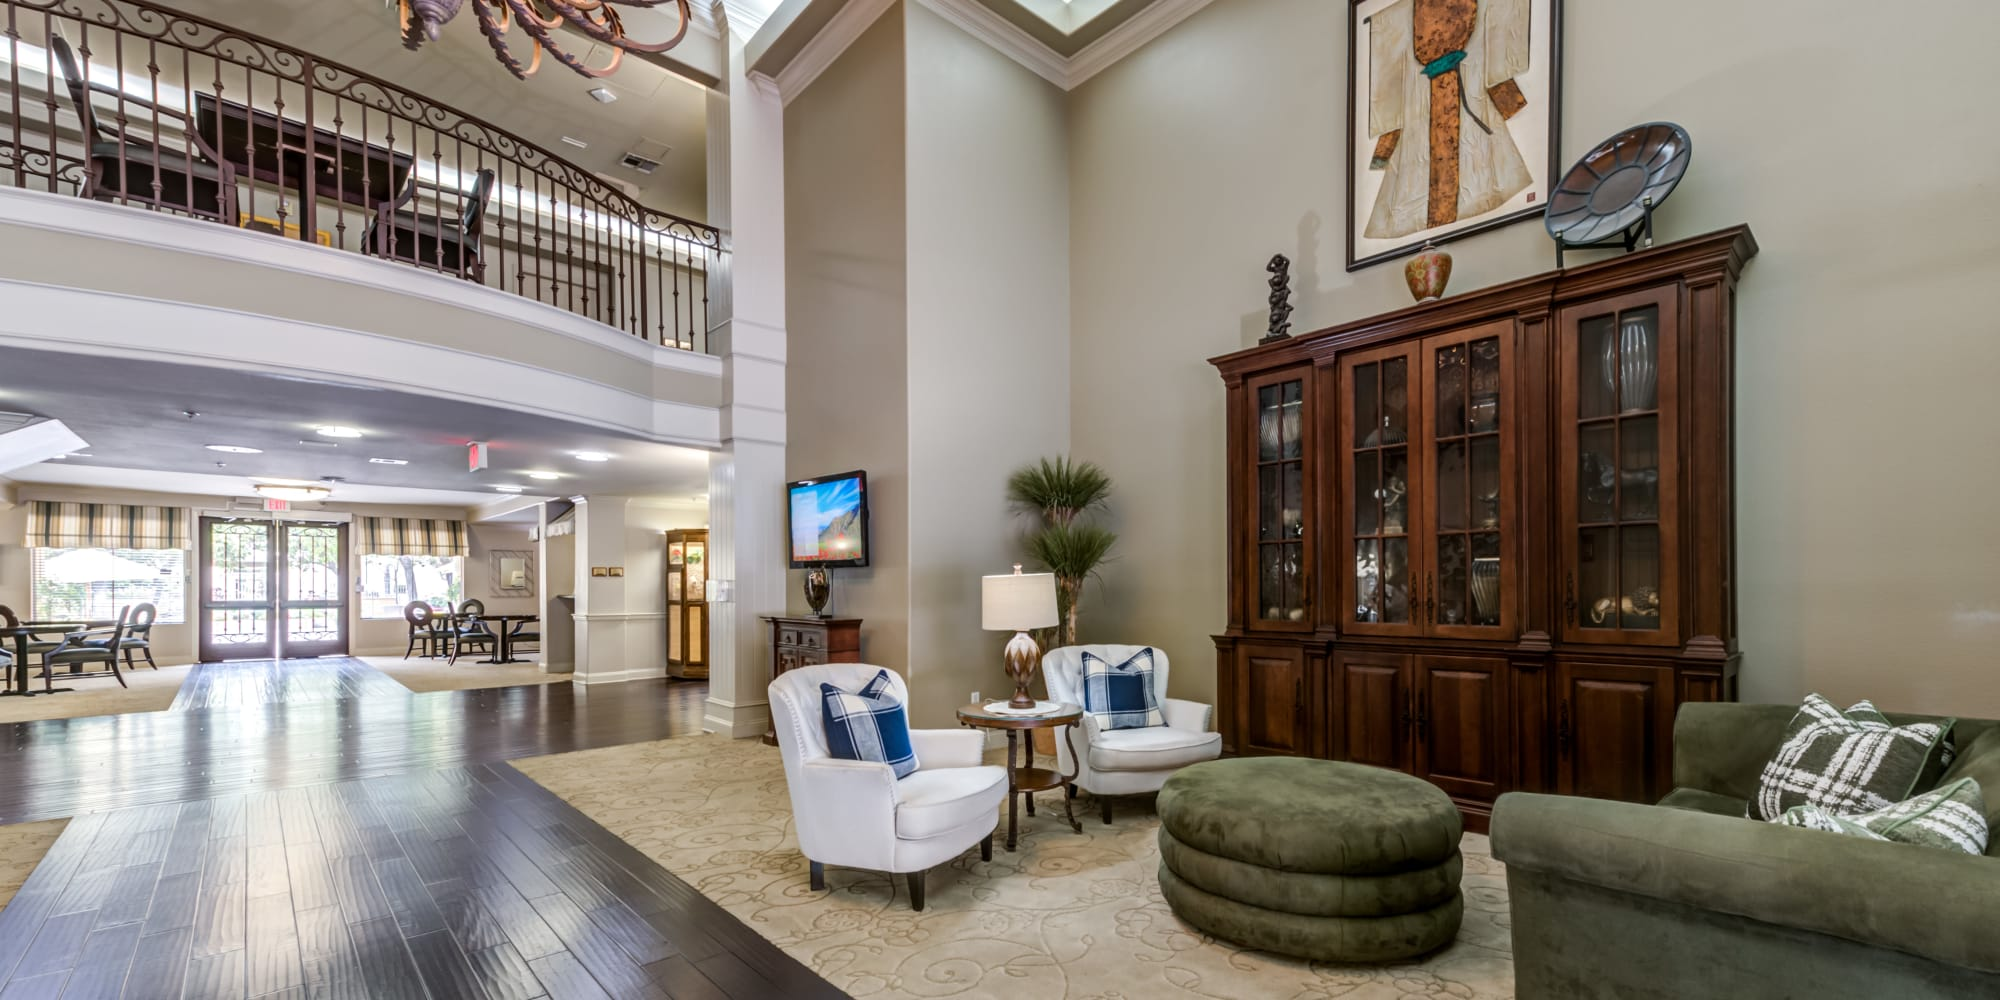 Lobby area of Cypress Place in Ventura, California